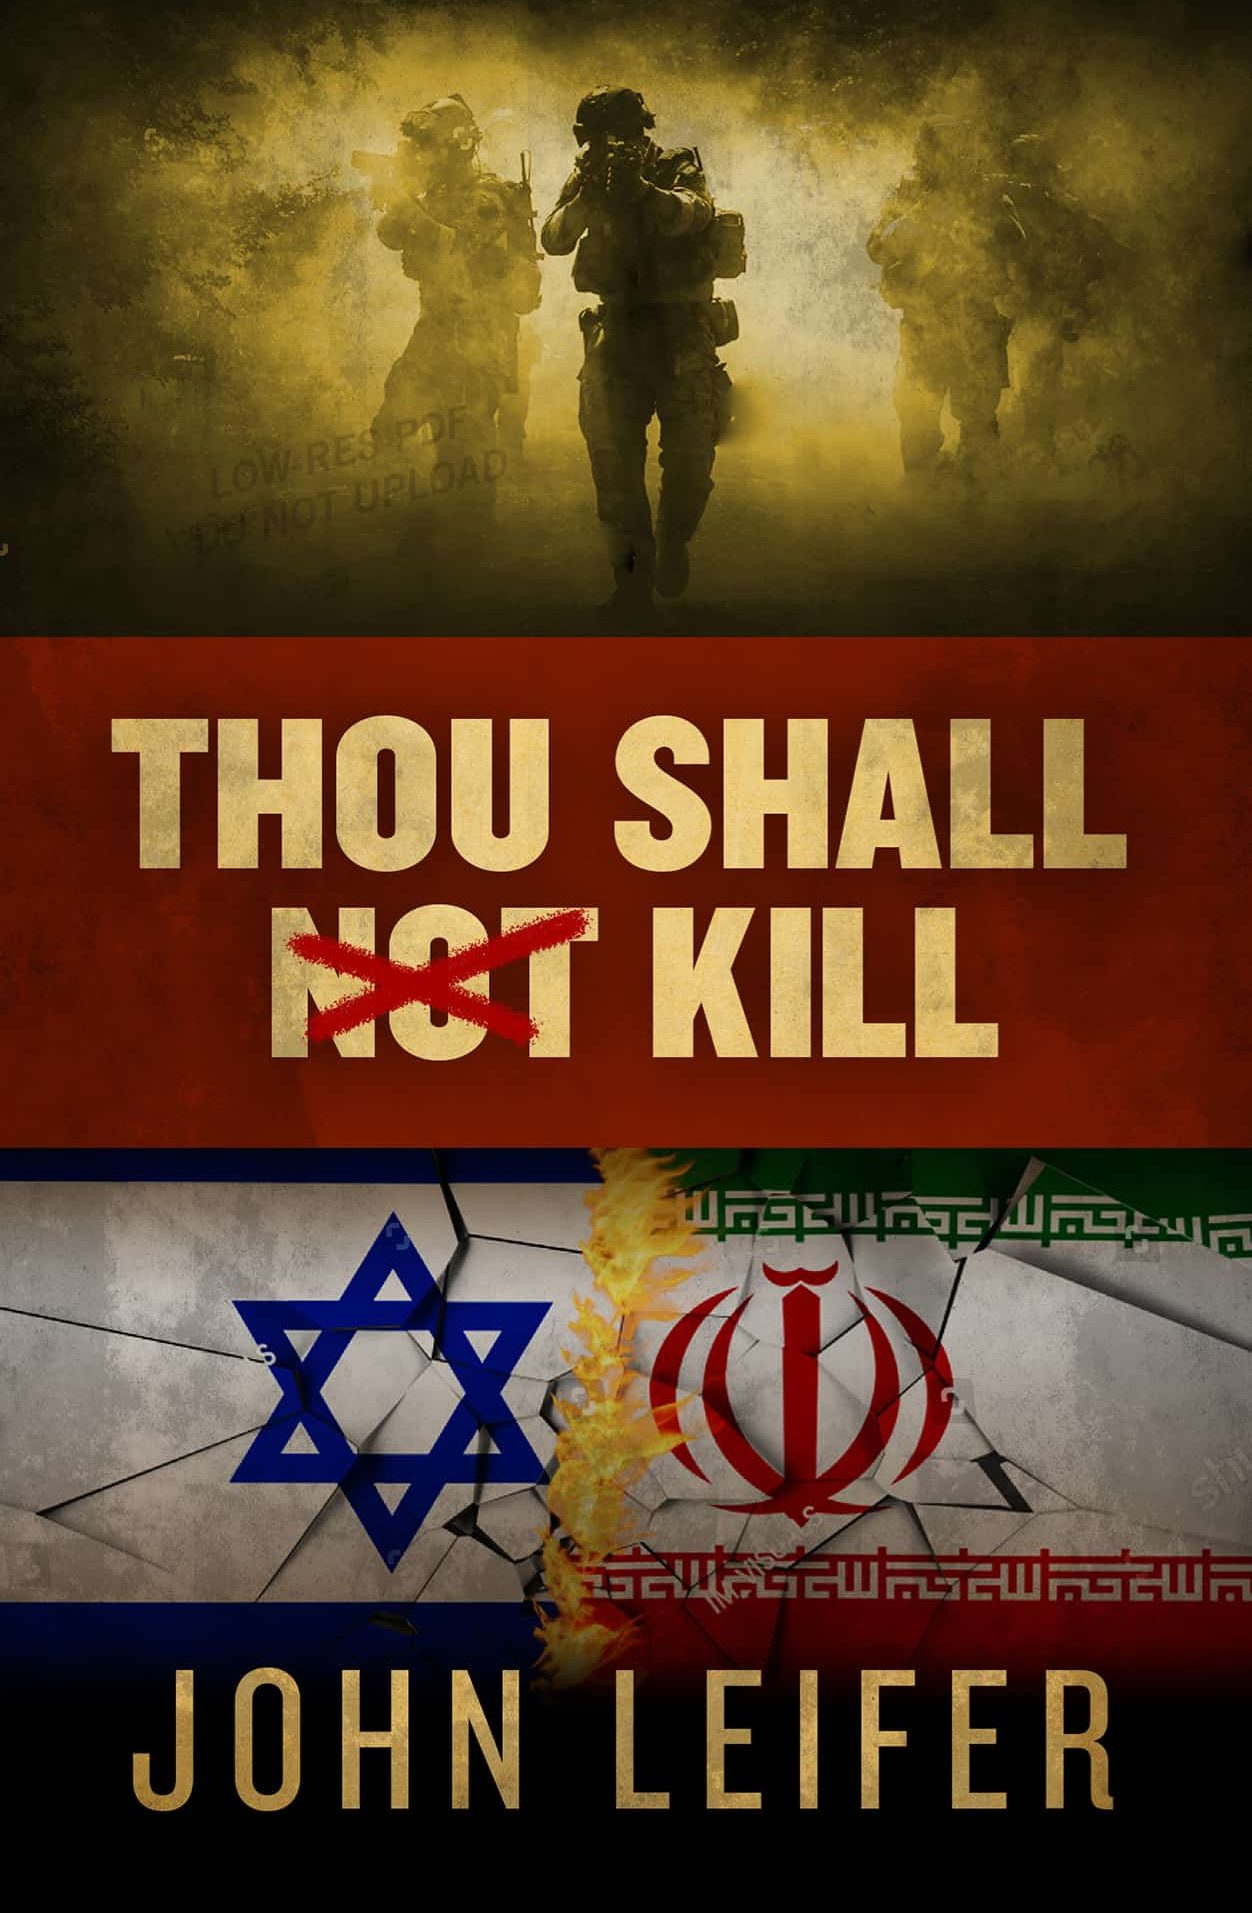 thou shall not kill 2019 by john leifer e1557171479886 - About